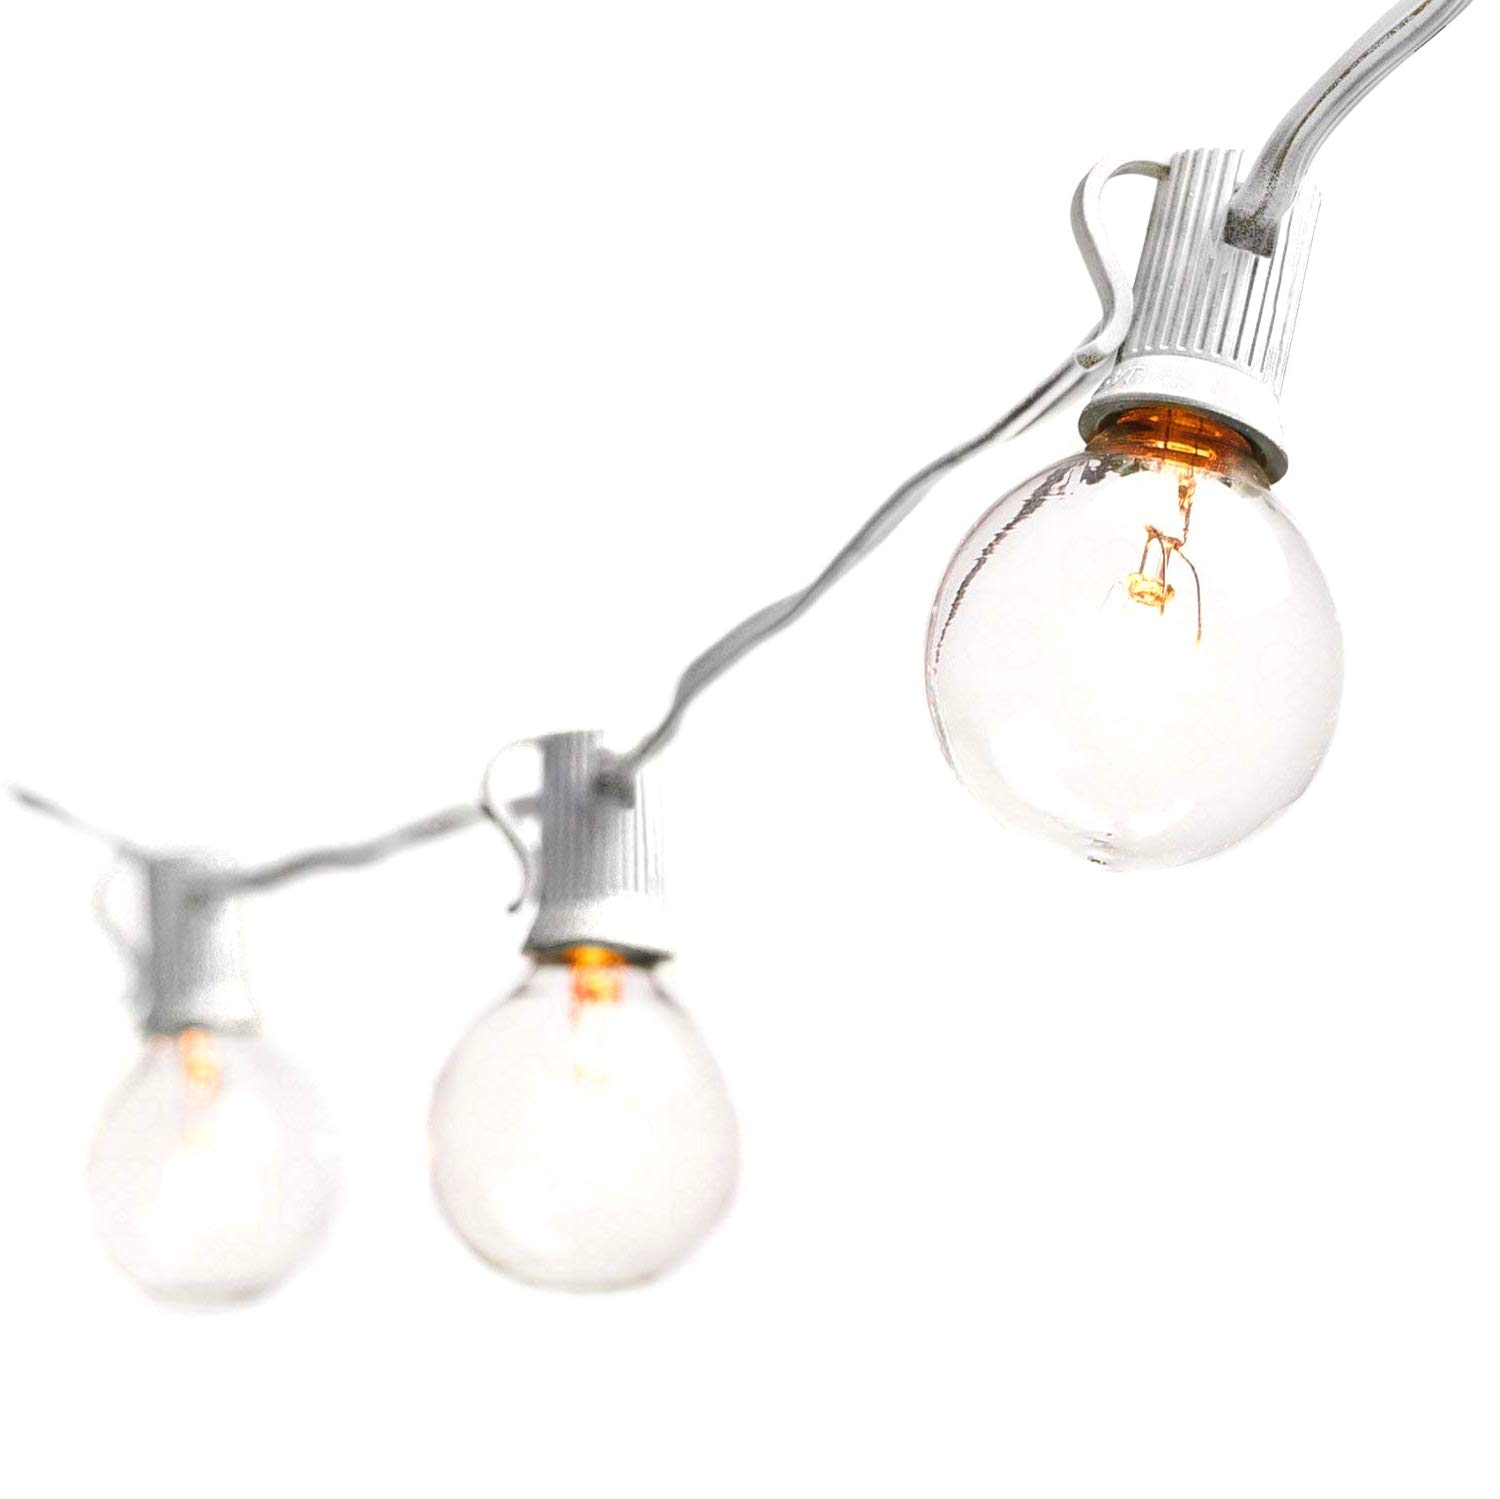 Goothy Globe String Lights with G40 Bulbs (25ft.) UL Listed Backyard Patio Lights Garden Bistro Party Natural Warm Bulbs Cafe Hanging Umbrella Lights on Light String Indoor Outdoor-White by Goothy